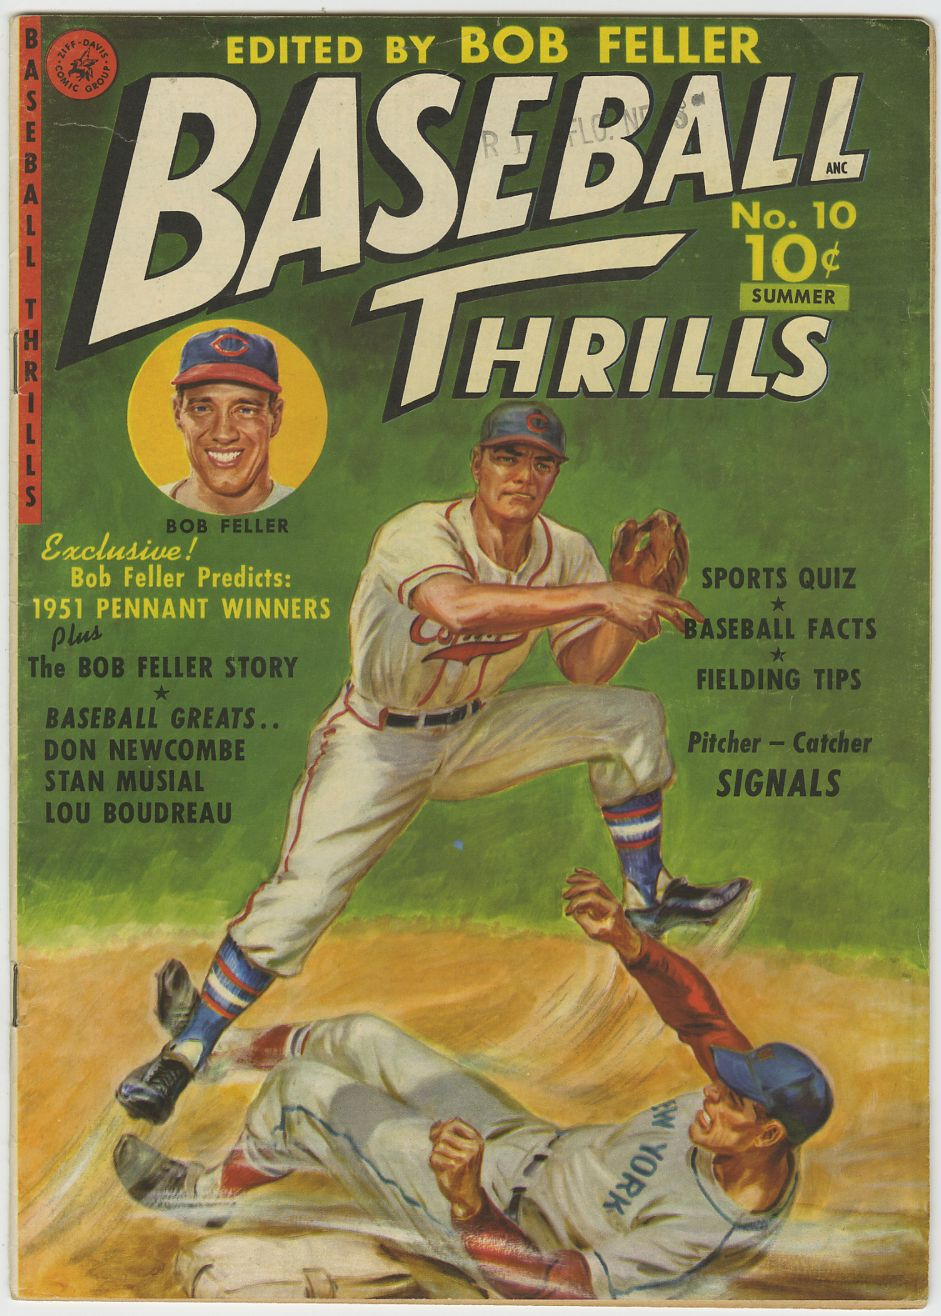 BASEBALL THRILLS #10 (1st issue!)  FELLER MUSIAL